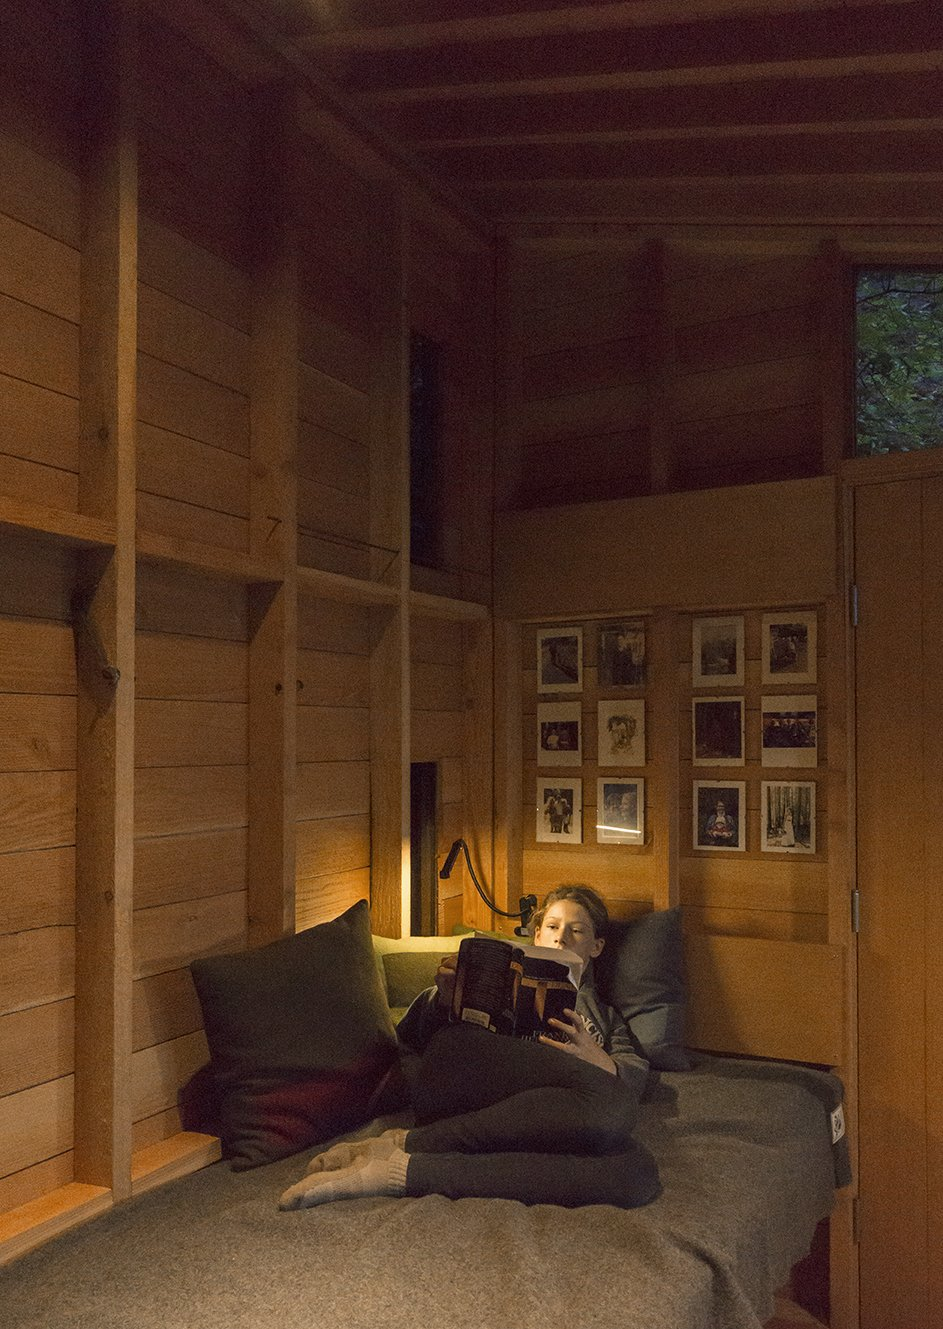 Opposite Jim's workstation, the modest interior accommodates a single bunk—Hannah's preferred reading perch.